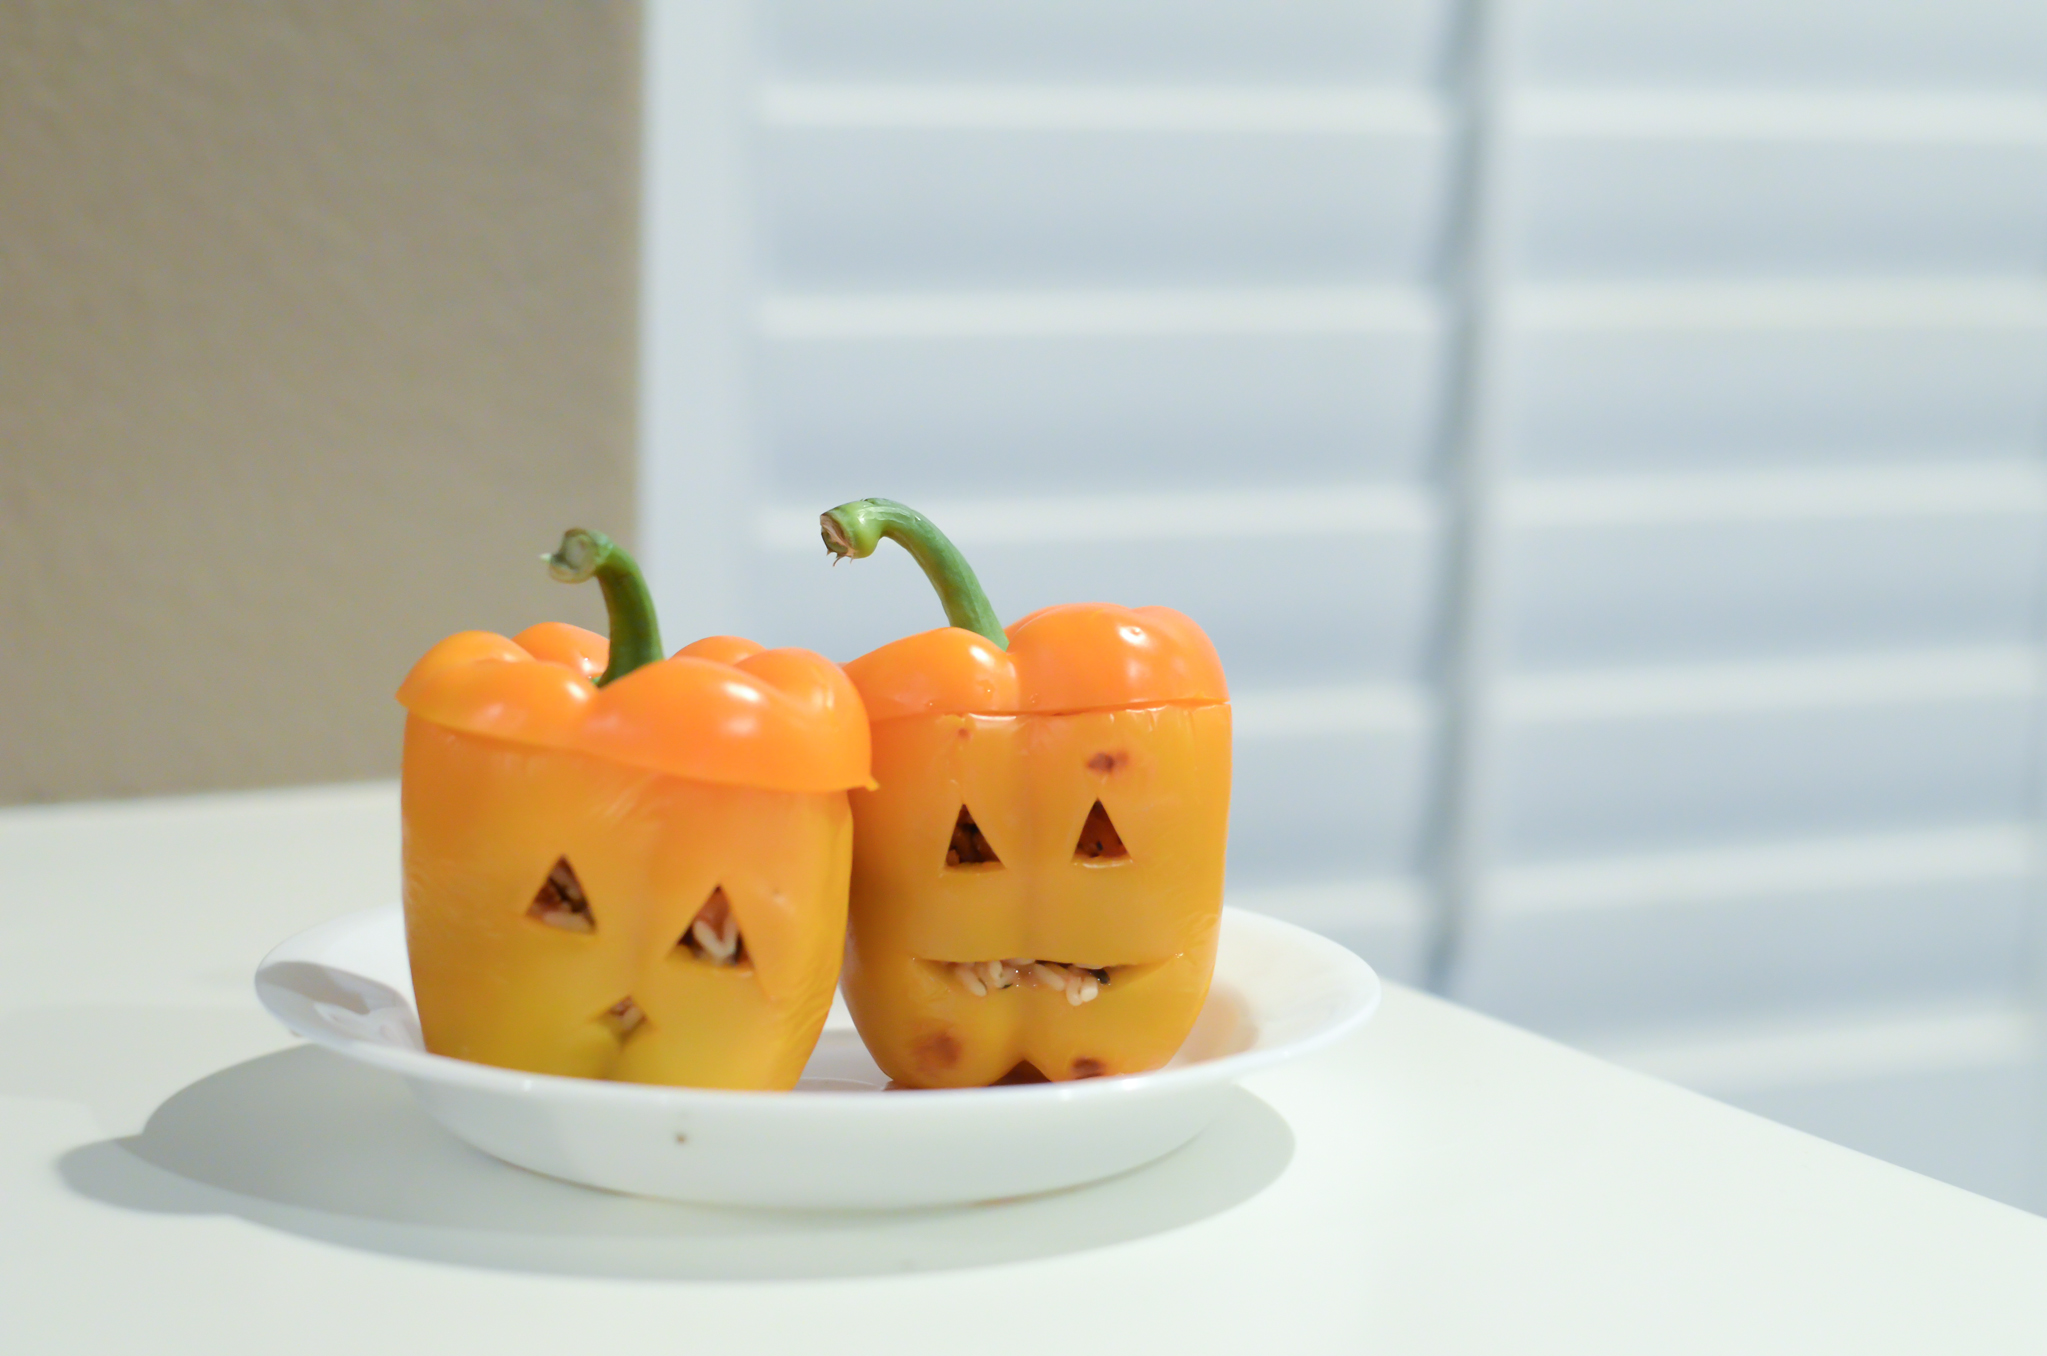 Directions: - 1. Heat oven to 375°F. Cut thin slice from stem end of each bell pepper to remove top. Remove seeds and membranes; rinse peppers. Reserve tops. If necessary, cut thin slice from bottom of peppers so they stand up straight. Using small sharp knife, cut out small eyes, nose and teeth from each pepper to look like jack-o'-lantern.2. Cook rice in microwave as directed on package. Meanwhile, in a 12-inch skillet, cook turkey and chopped vegetables over medium-high heat from 5-7 minutes, stirring occasionally until turkey is thoroughly cooked; drain. Stir in 1/2 cup of the tomato sauce, the ground turkey, and cooked rice.3. Stuff peppers with turkey mixture. Pour remaining tomato sauce in an ungreased 11x7-inch (2-quart) glass baking dish. Stand peppers upright in dish. Replace pepper tops.4. Cover tightly with foil. Bake 45 minutes. Uncover; bake about 15 minutes longer or until peppers are tender.